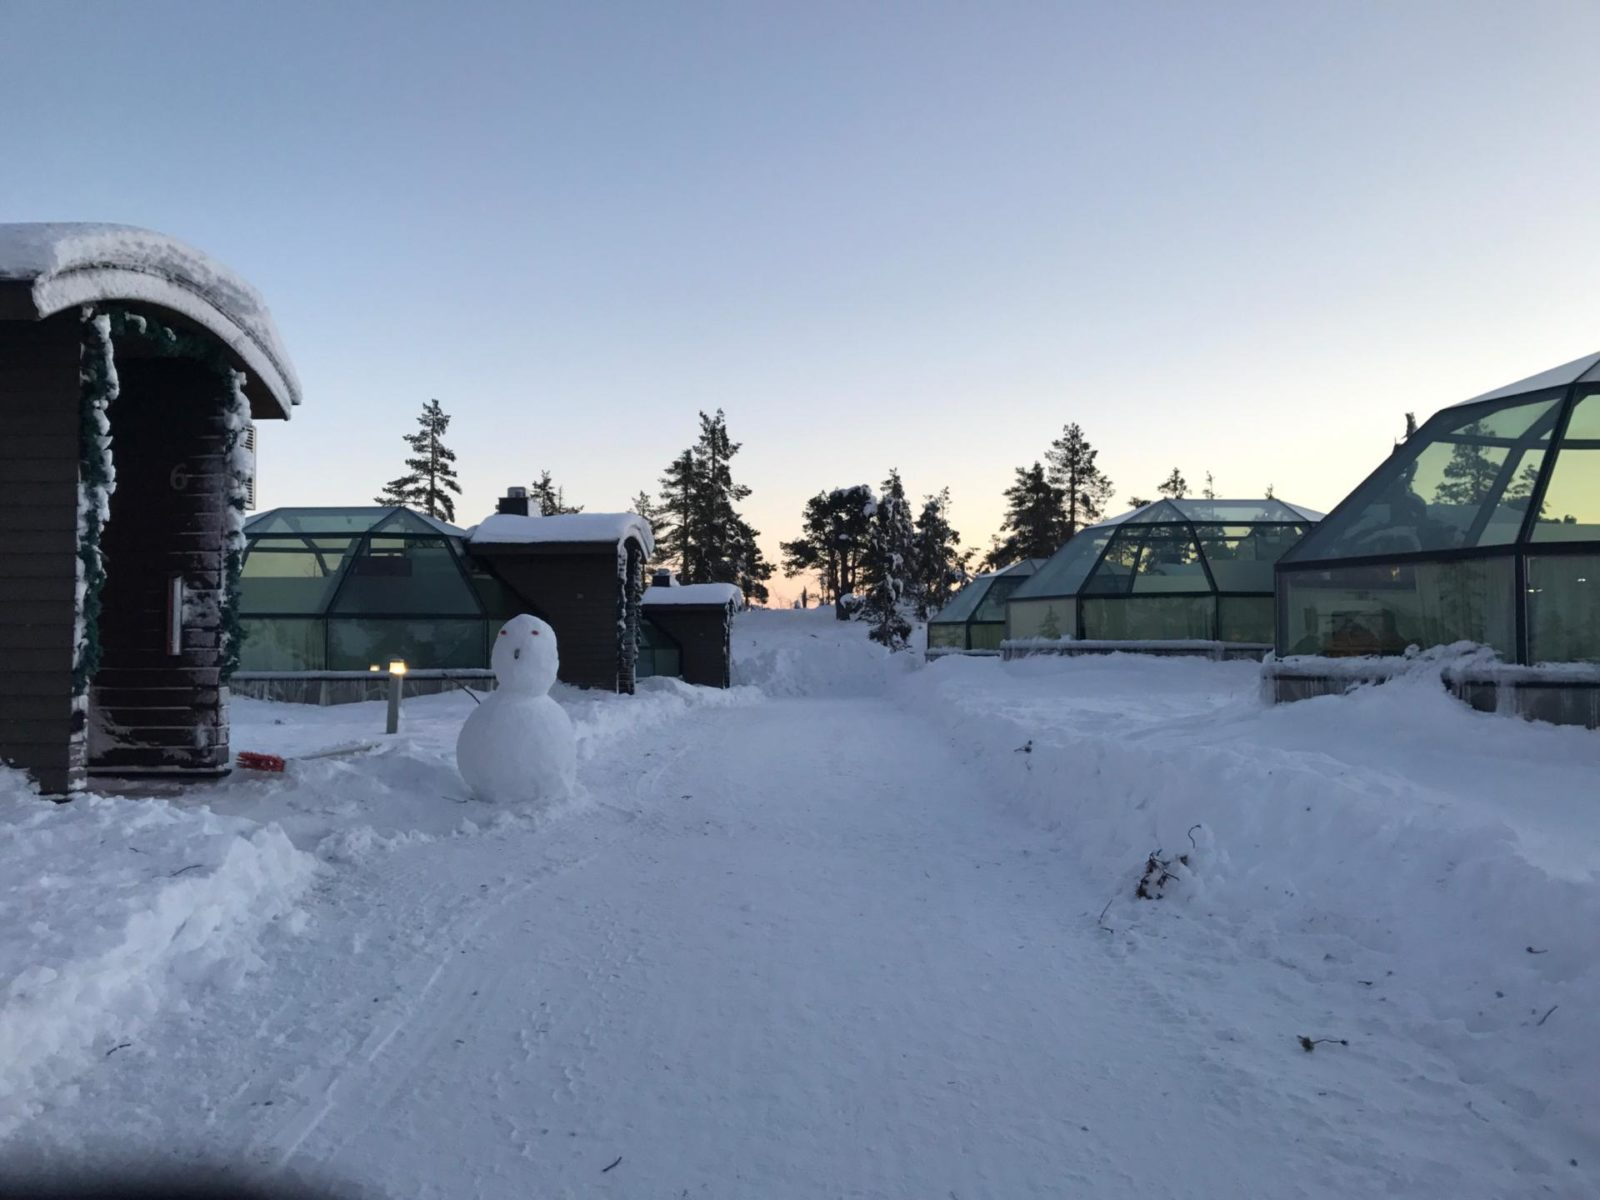 Staying in a glass igloo is truly a once-in-a-lifetime experience! Read all about it!